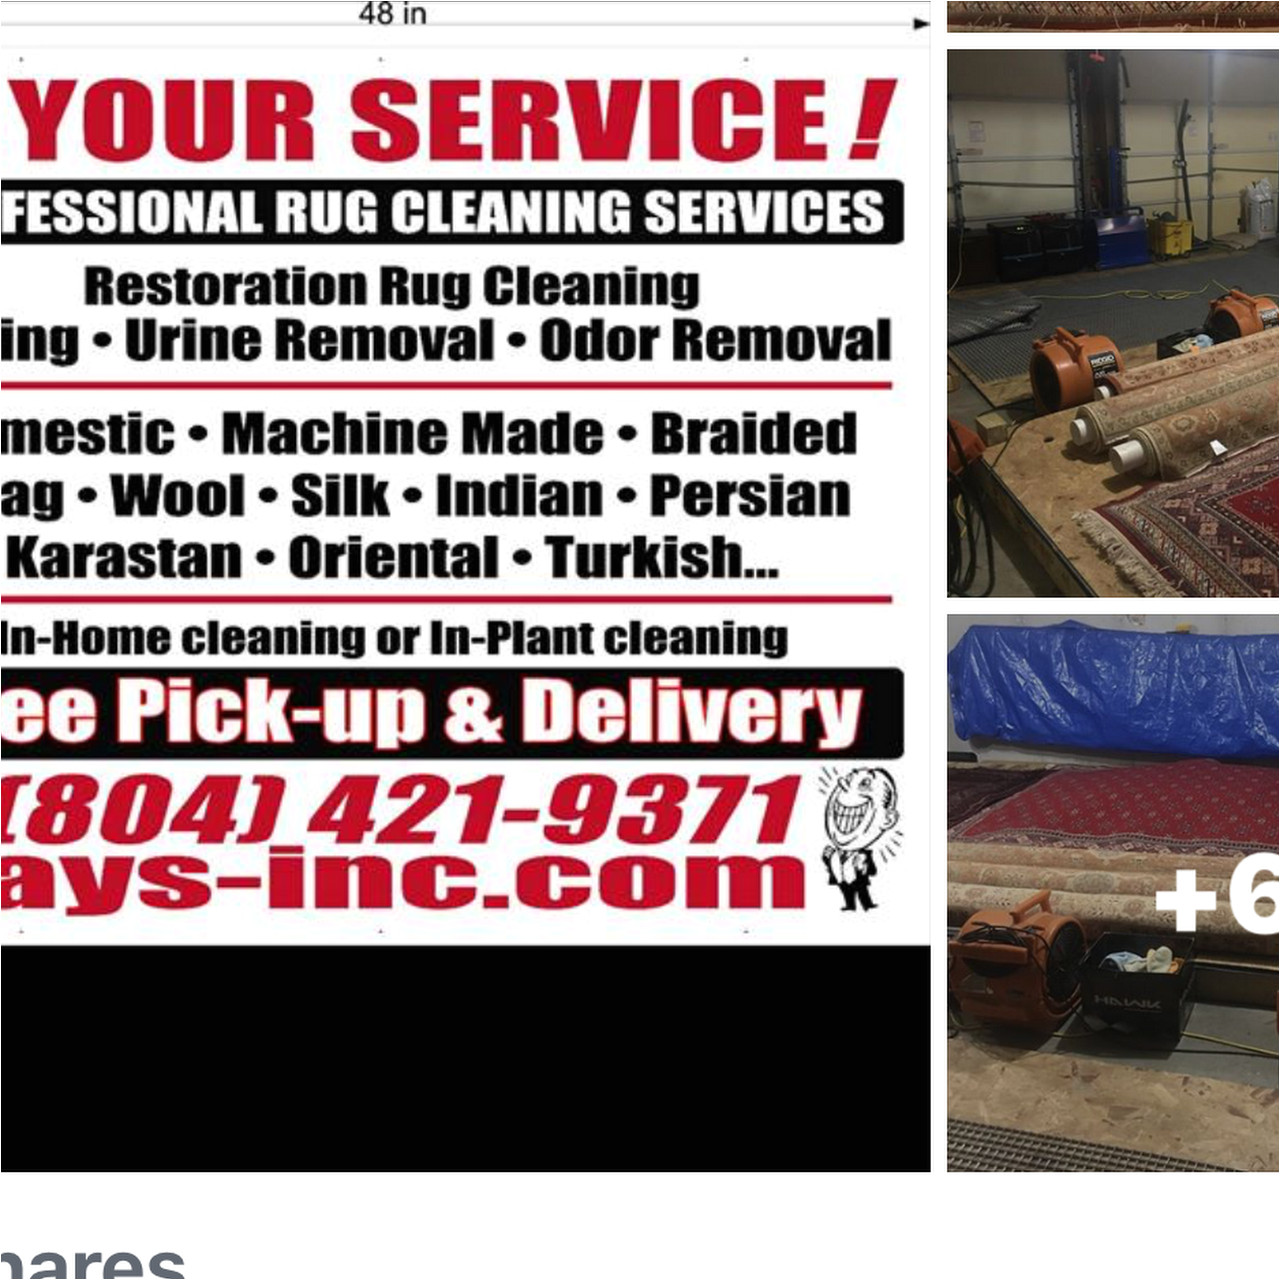 posted on jul 10 2018 richmond s affordable professional rug cleaning